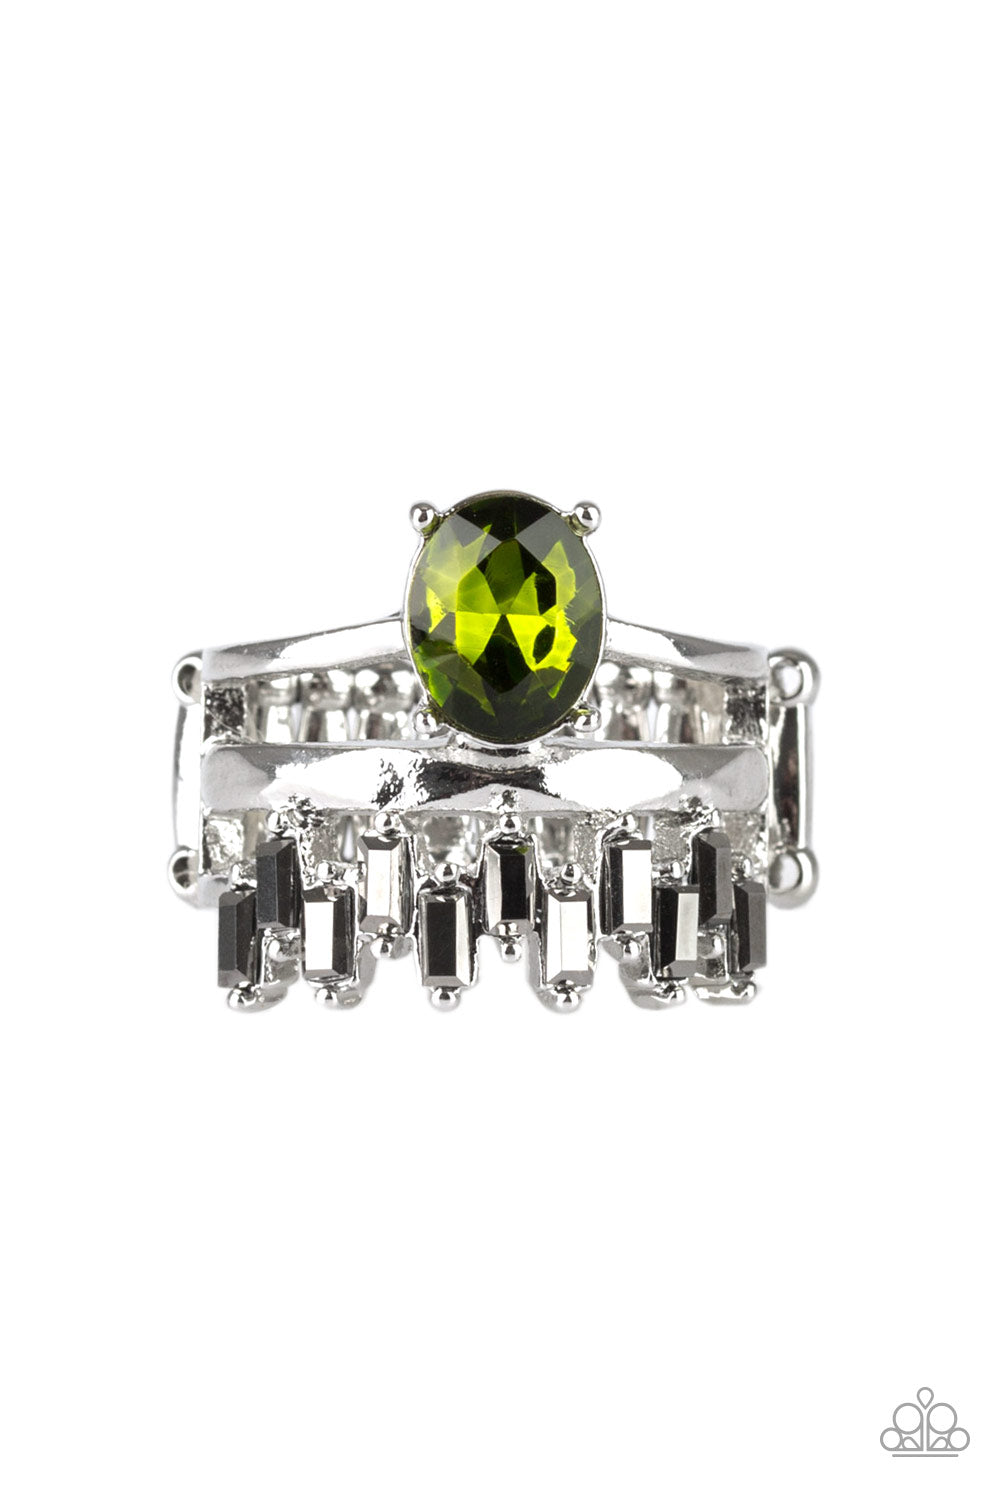 five-dollar-jewelry-crowned-victor-green-ring-paparazzi-accessories